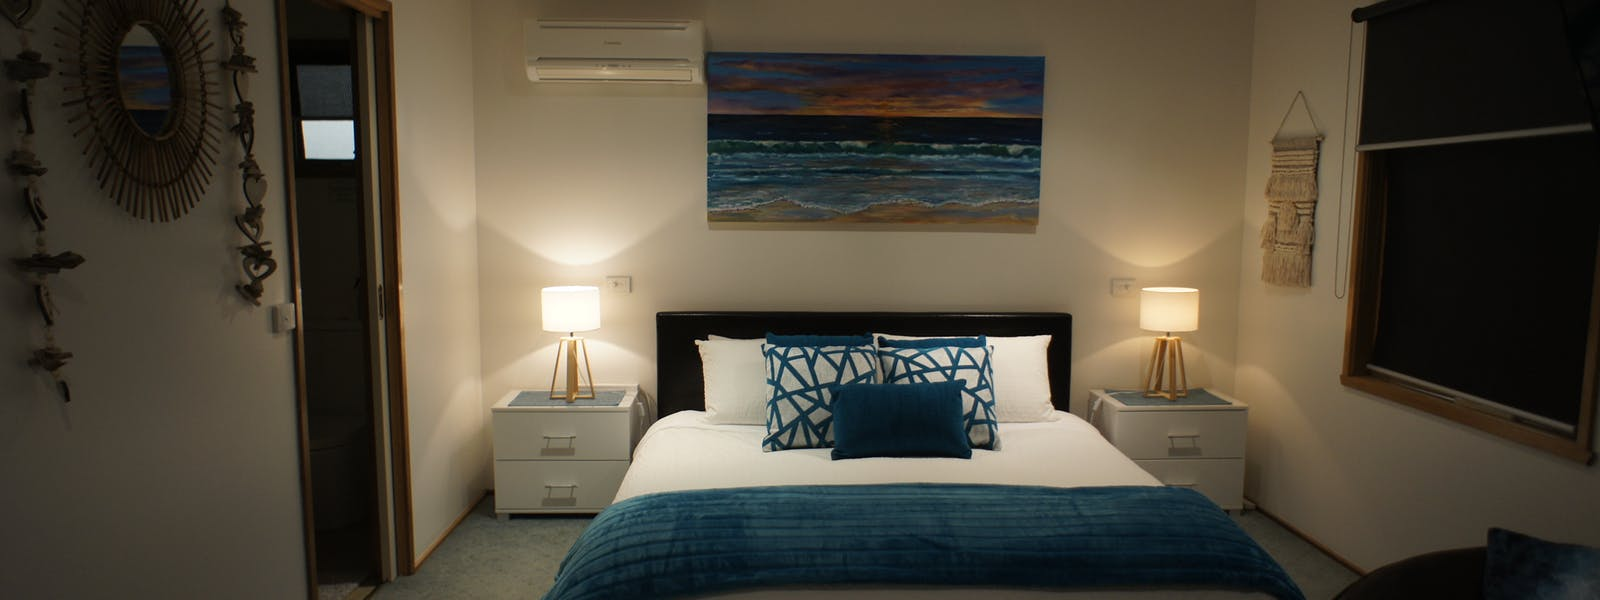 Venus Bay Bed and Breakfast, massage, weekend away, close to beach, adults only, inverloch bed and breakfast, tarwin lower